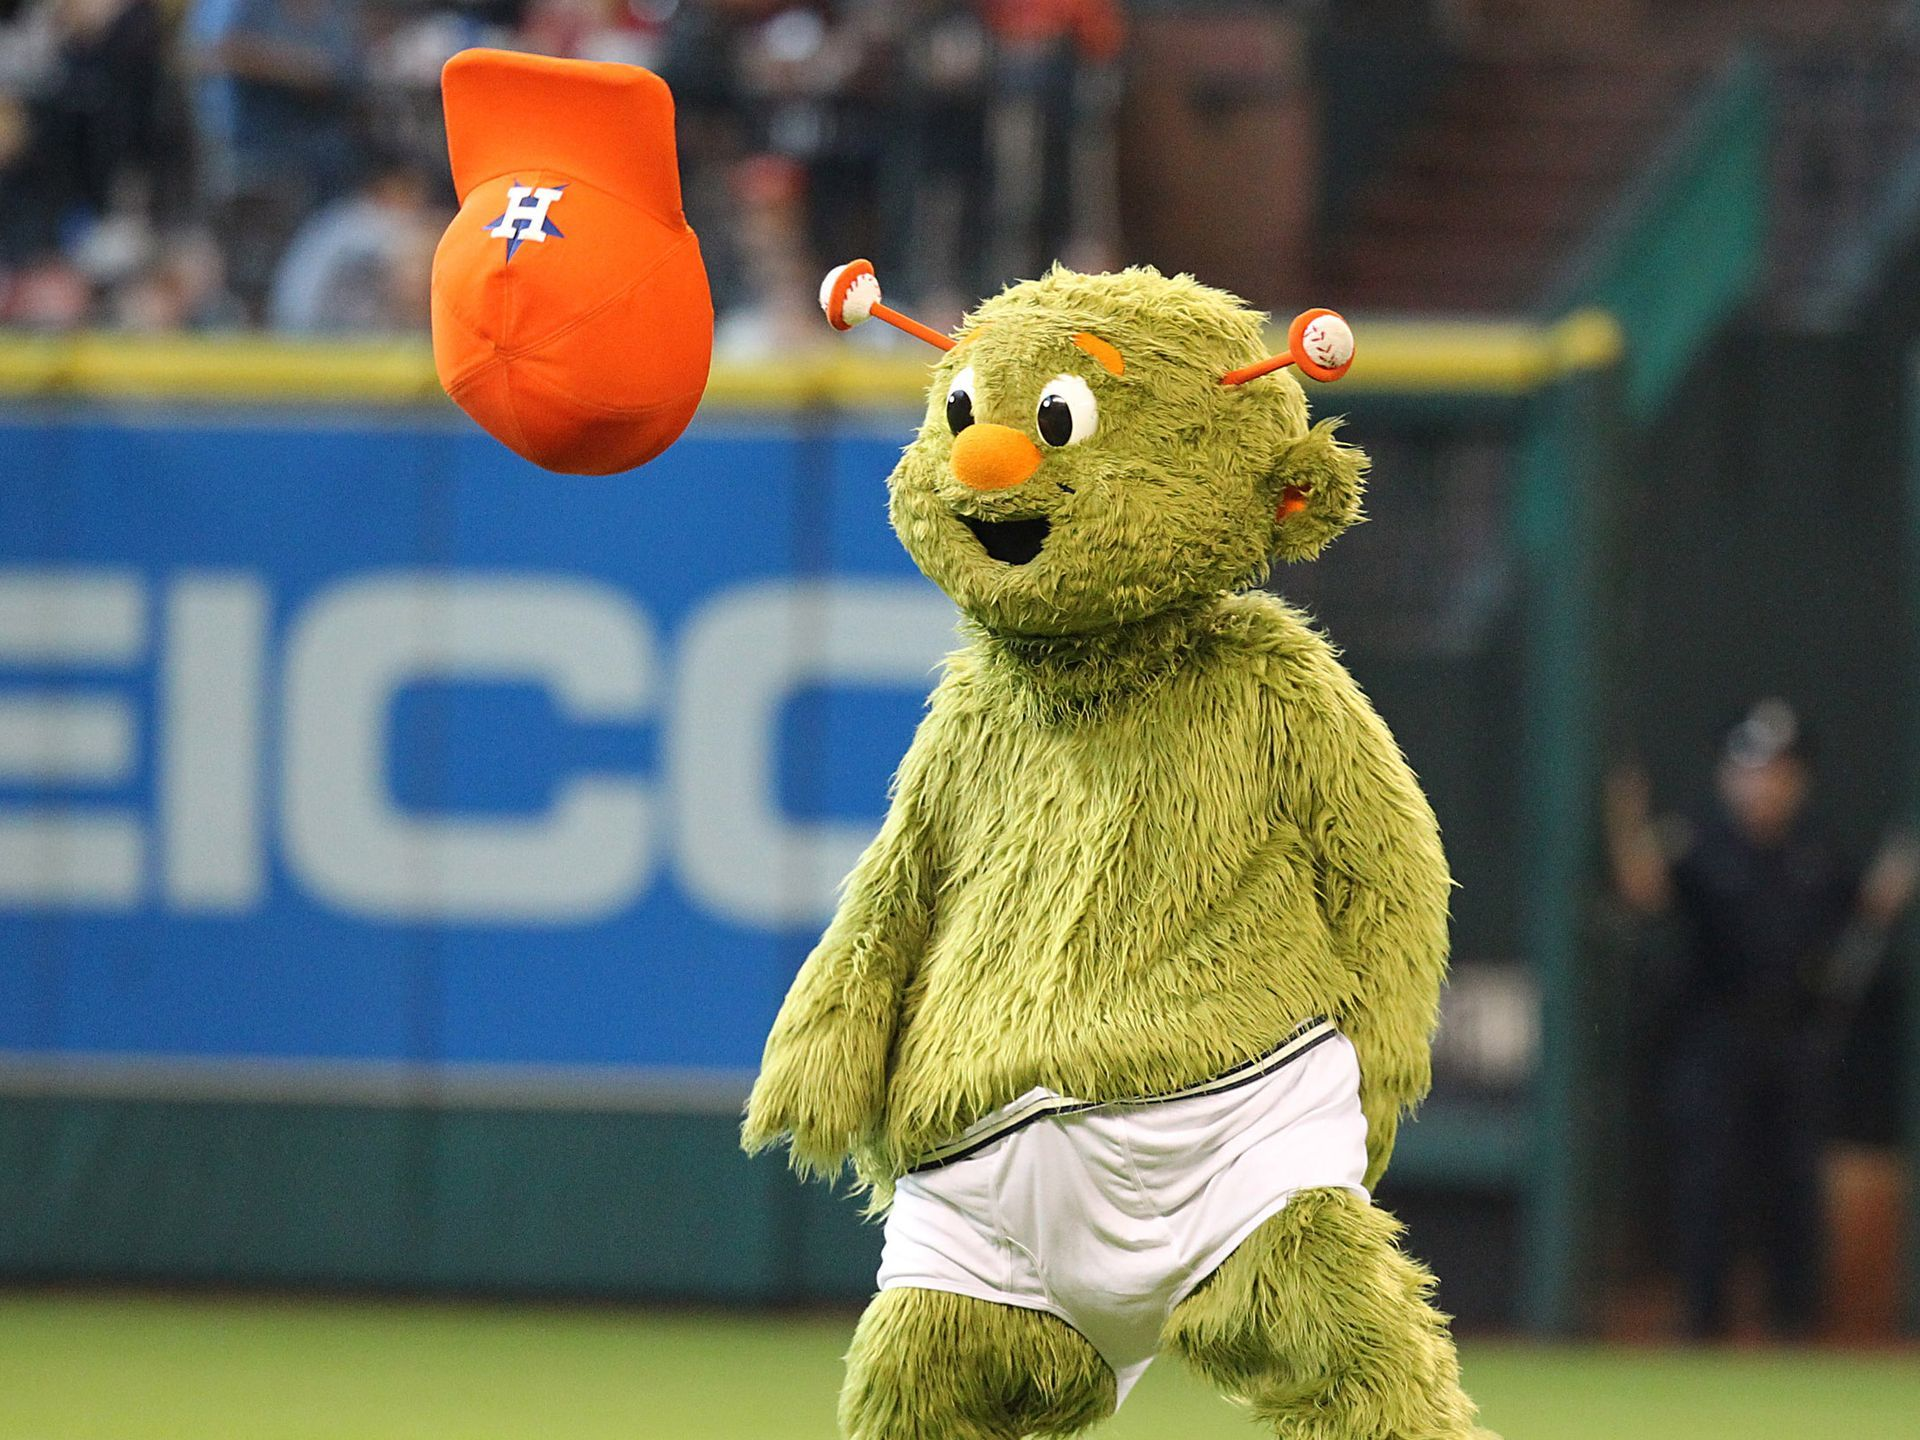 Houston astros mascot orbit streaks between innings of the astros orbit streaks between innings of the astros and chicago white sox game in houston orbit was celebrating his birthday thomas shea usa today sports spiritdancerdesigns Images